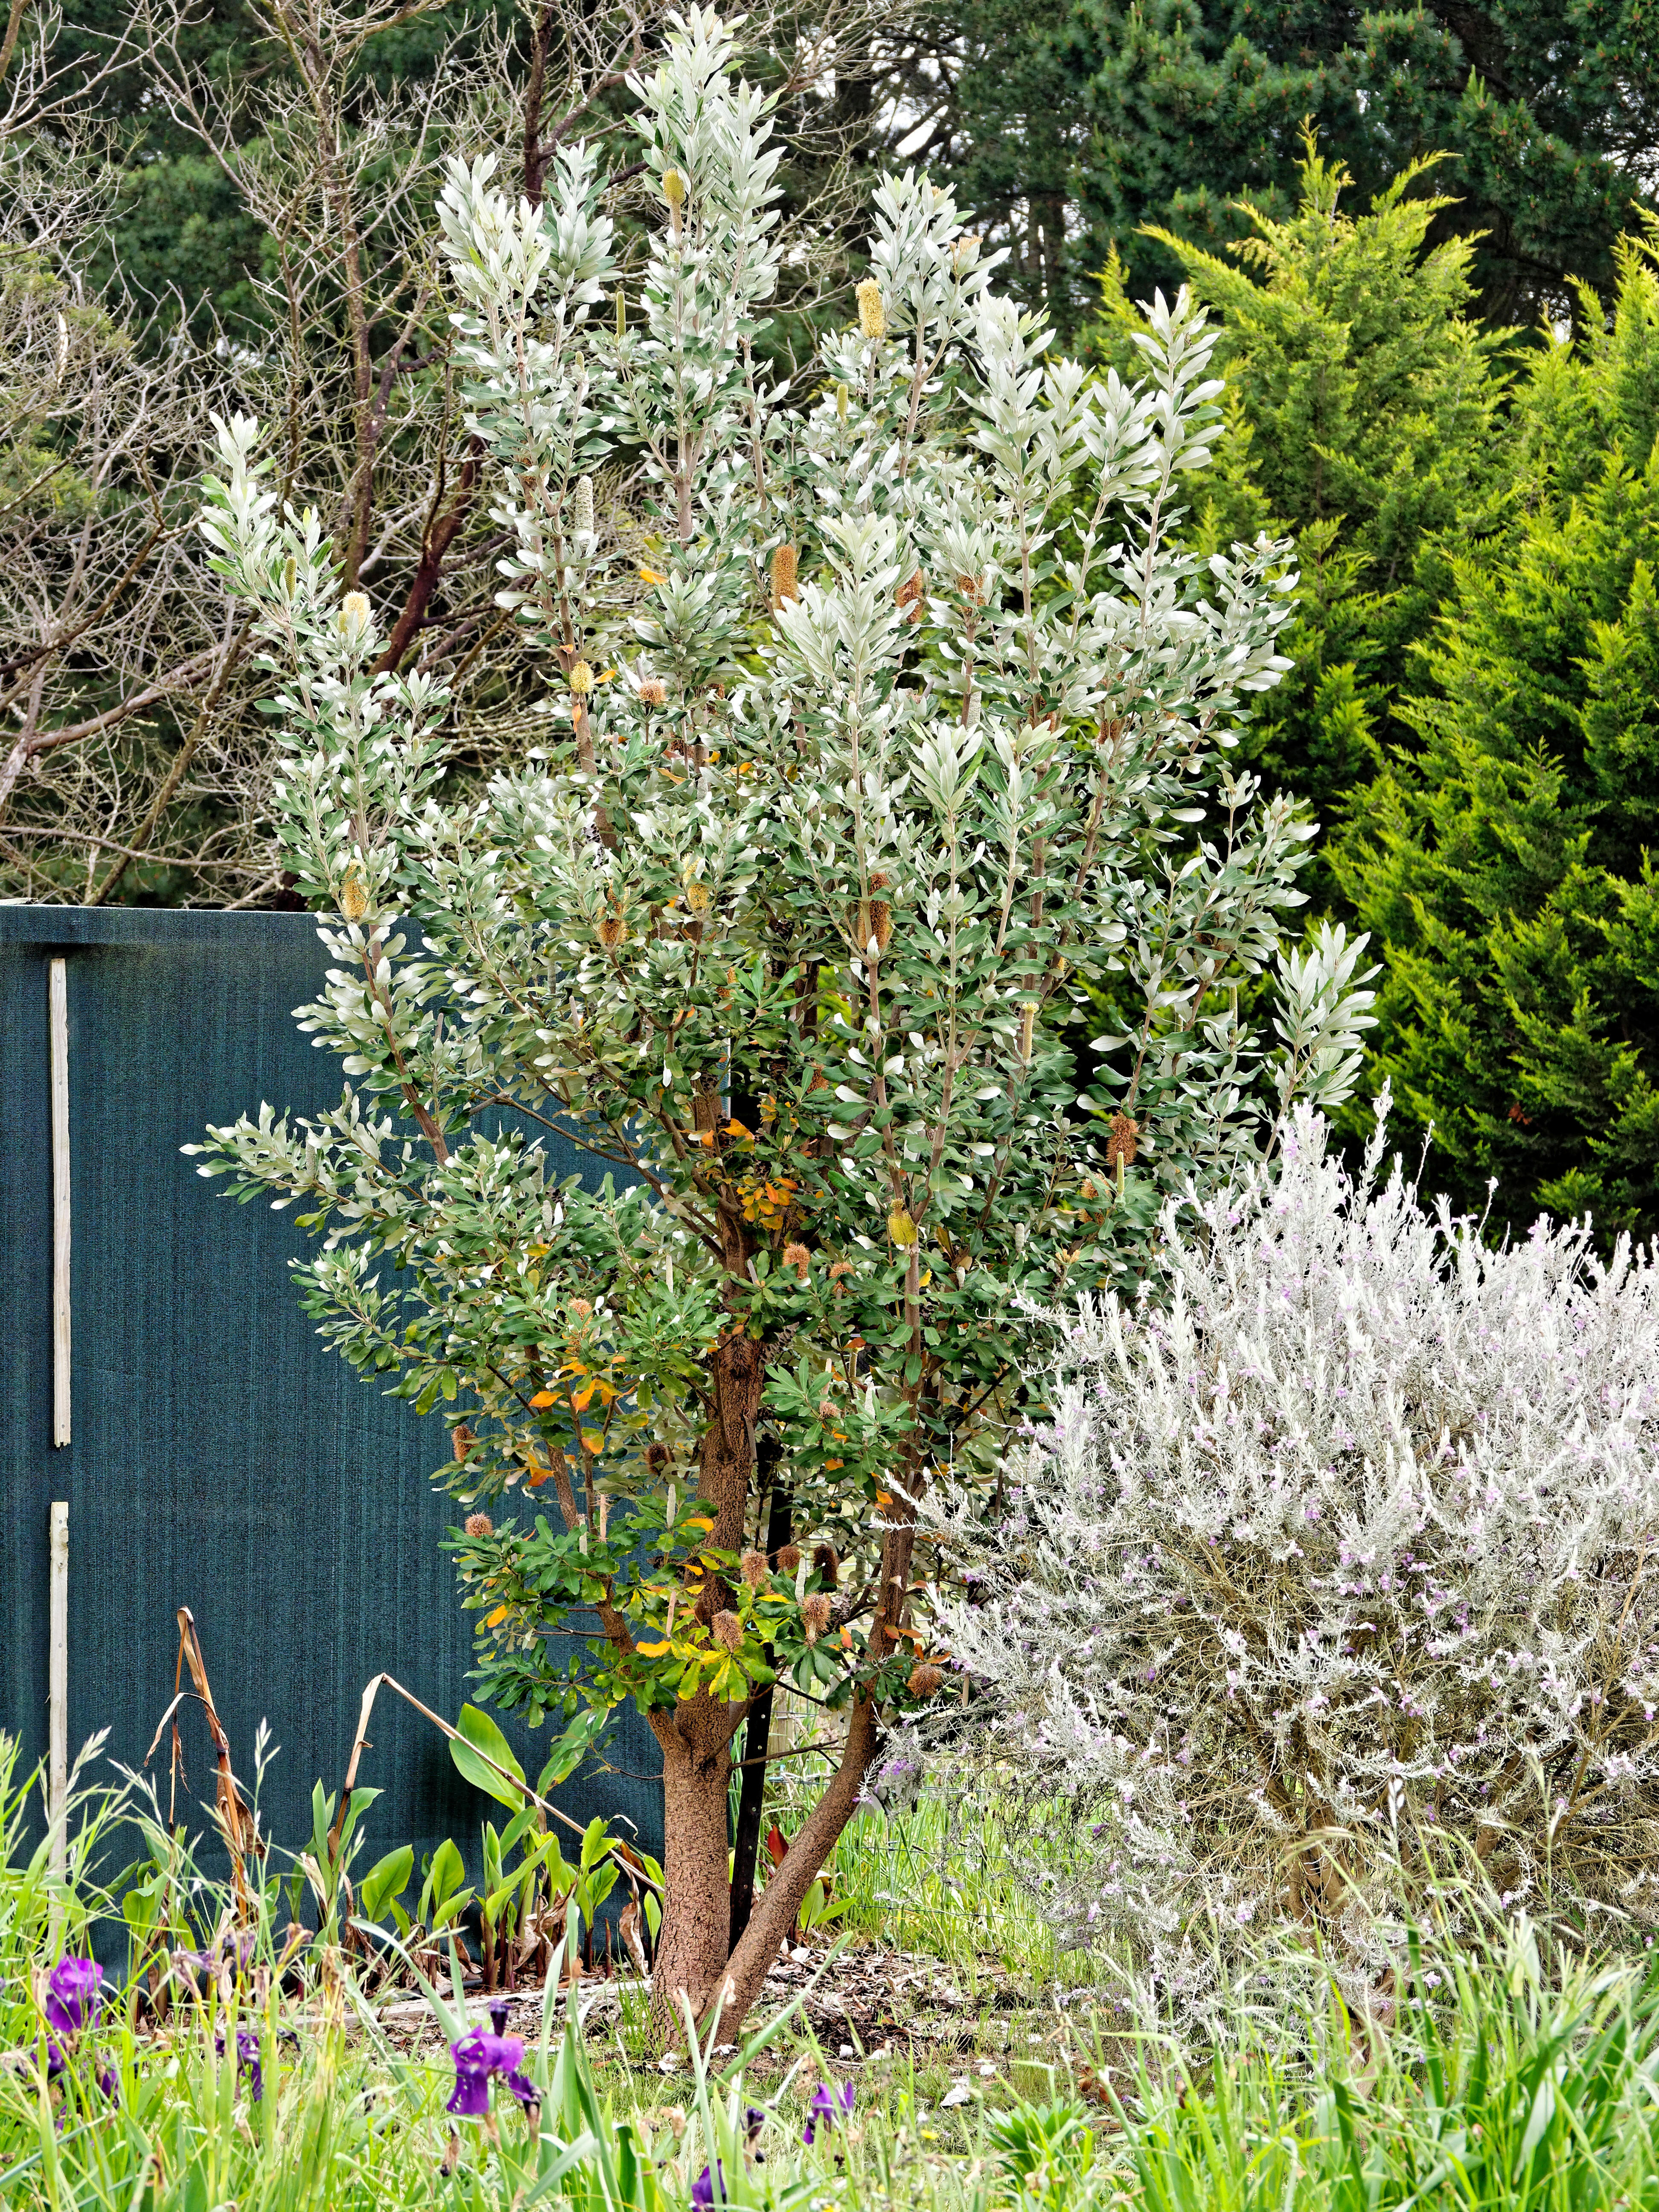 This should be Banksia-integrifolia-1.jpeg.  Is it missing?